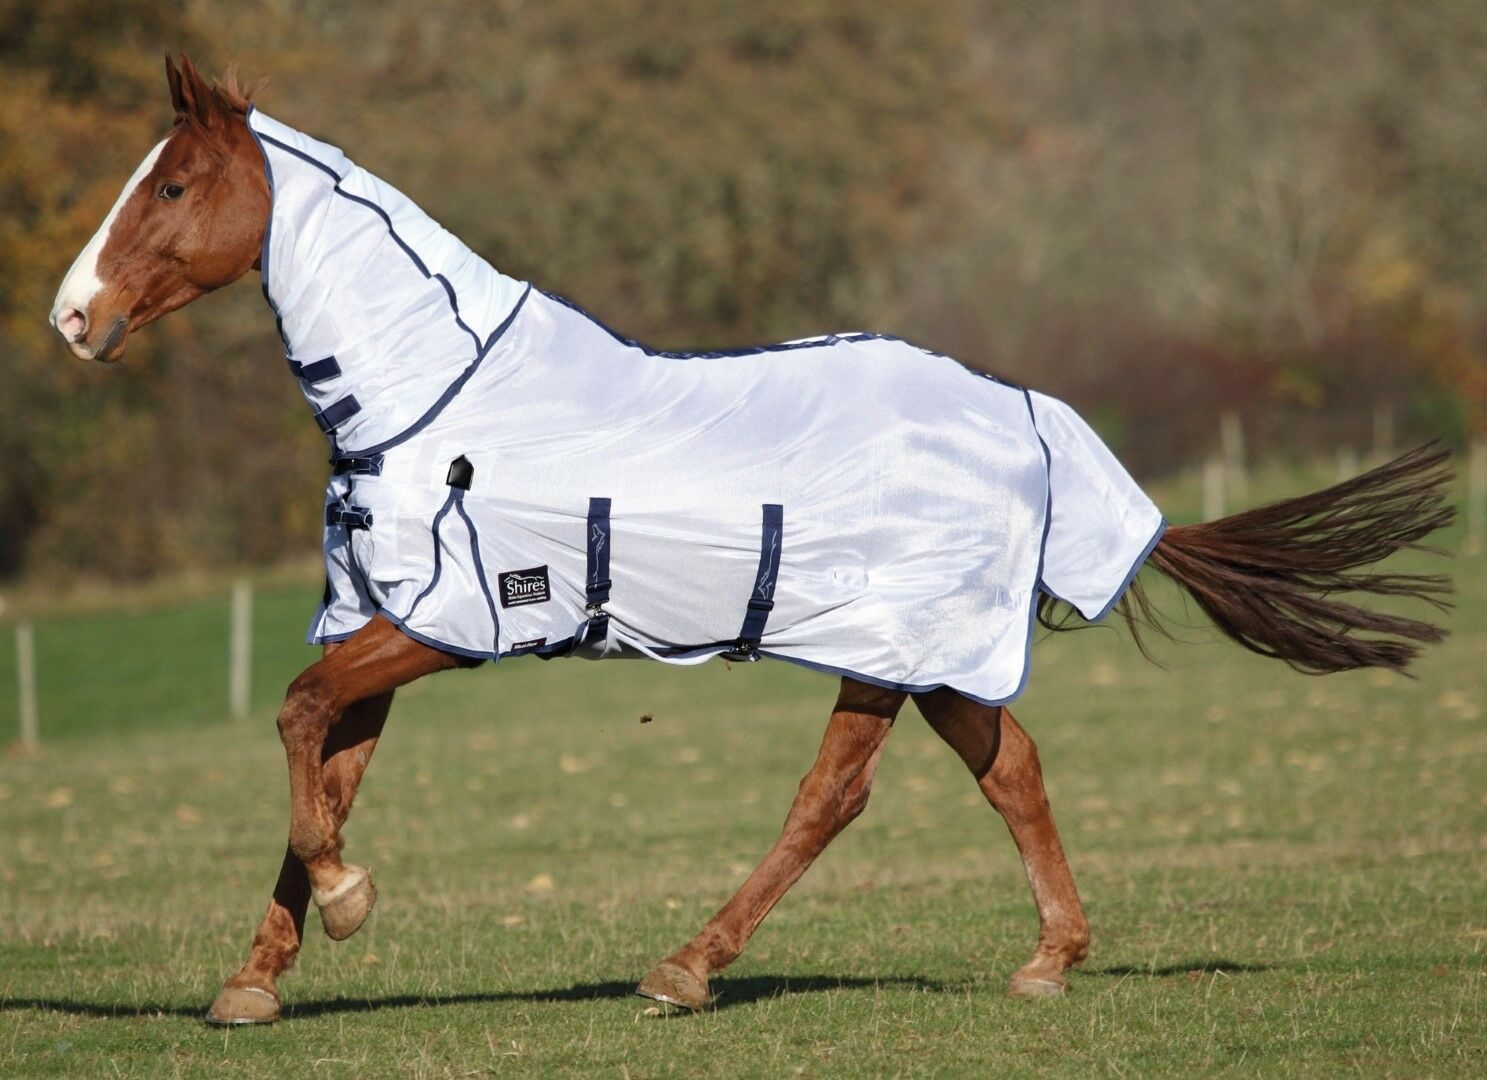 Shires Maxi Flow Combo Fly Rug inc Belly Flap, 4'0